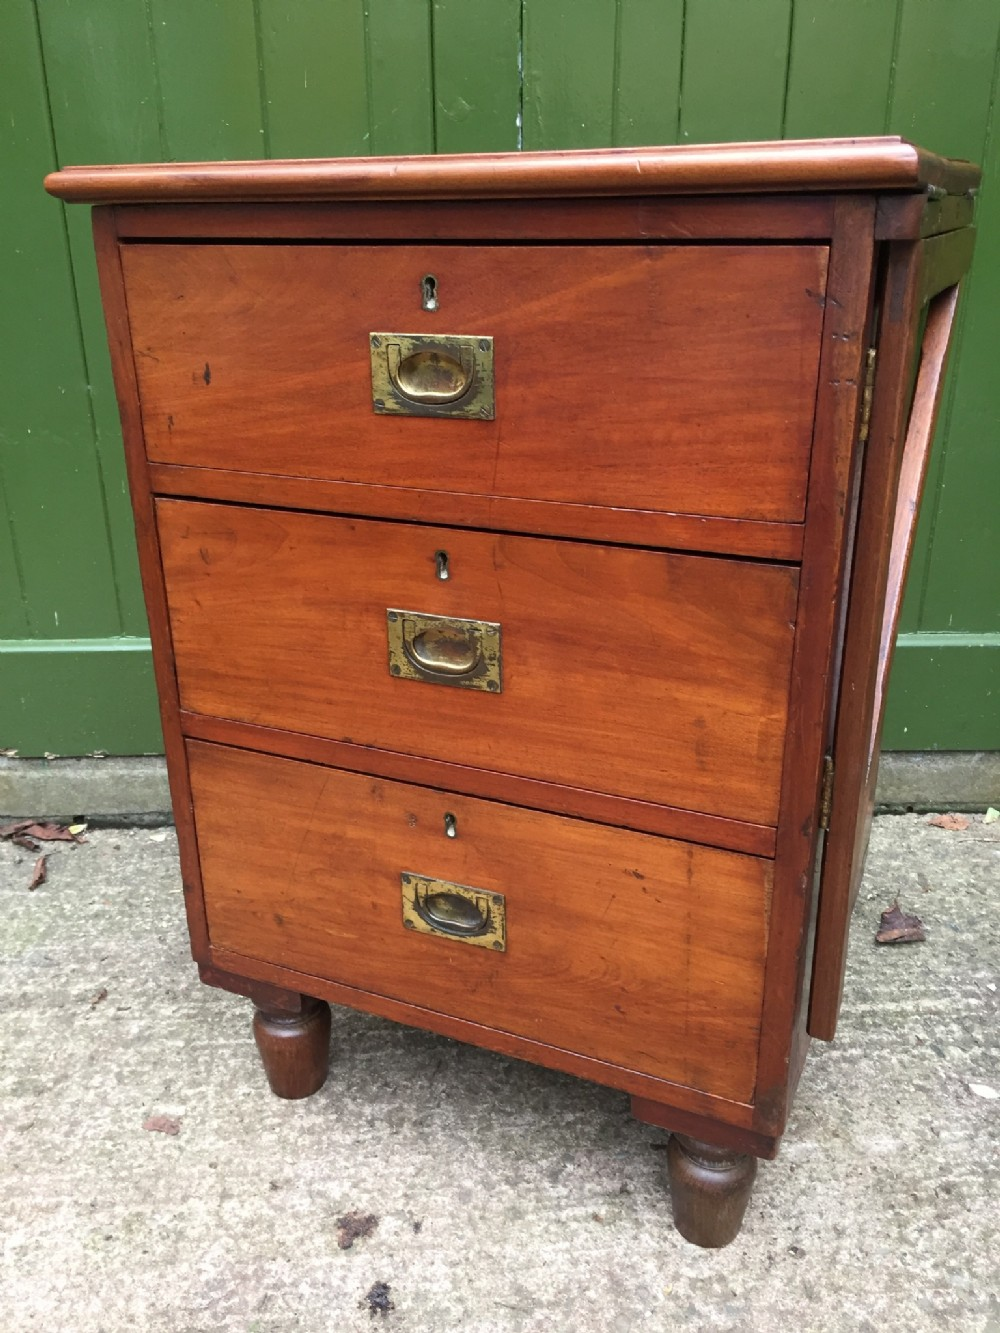 c19th mahogany military or naval campaign pedestal chest of drawers with a foldover flap top